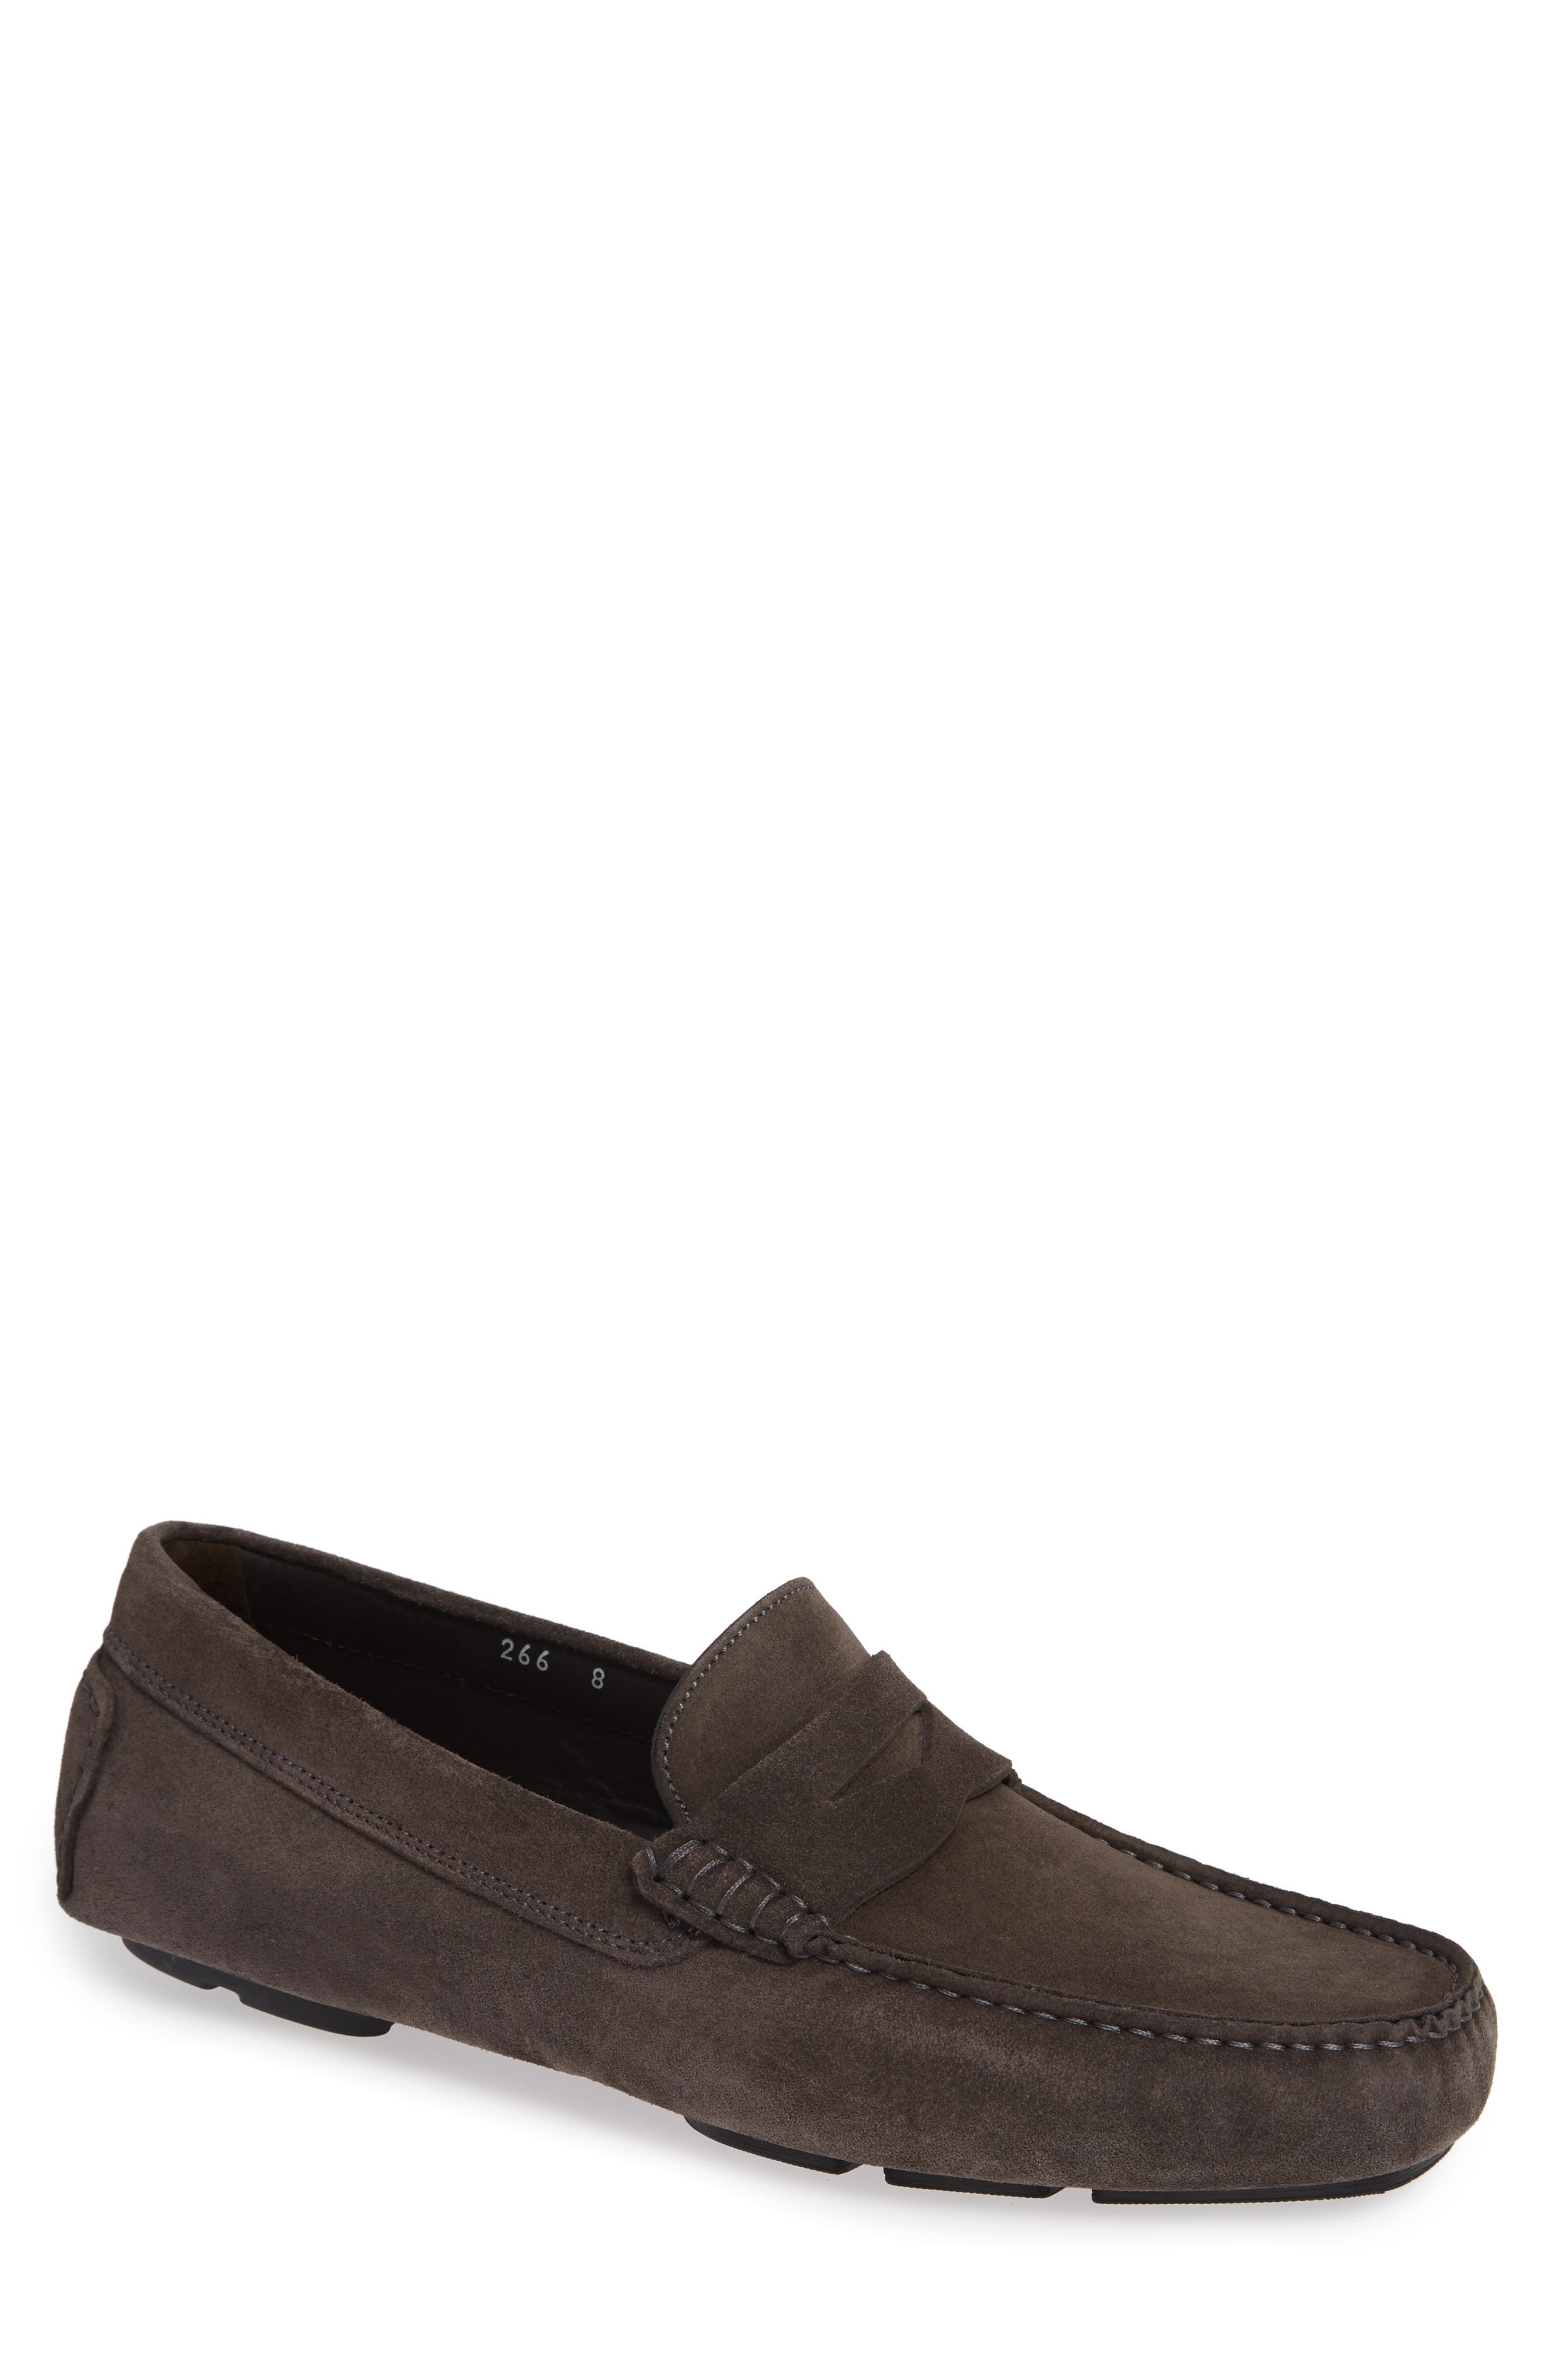 Jackson Penny Driving Loafer,                         Main,                         color, GREY LEATHER